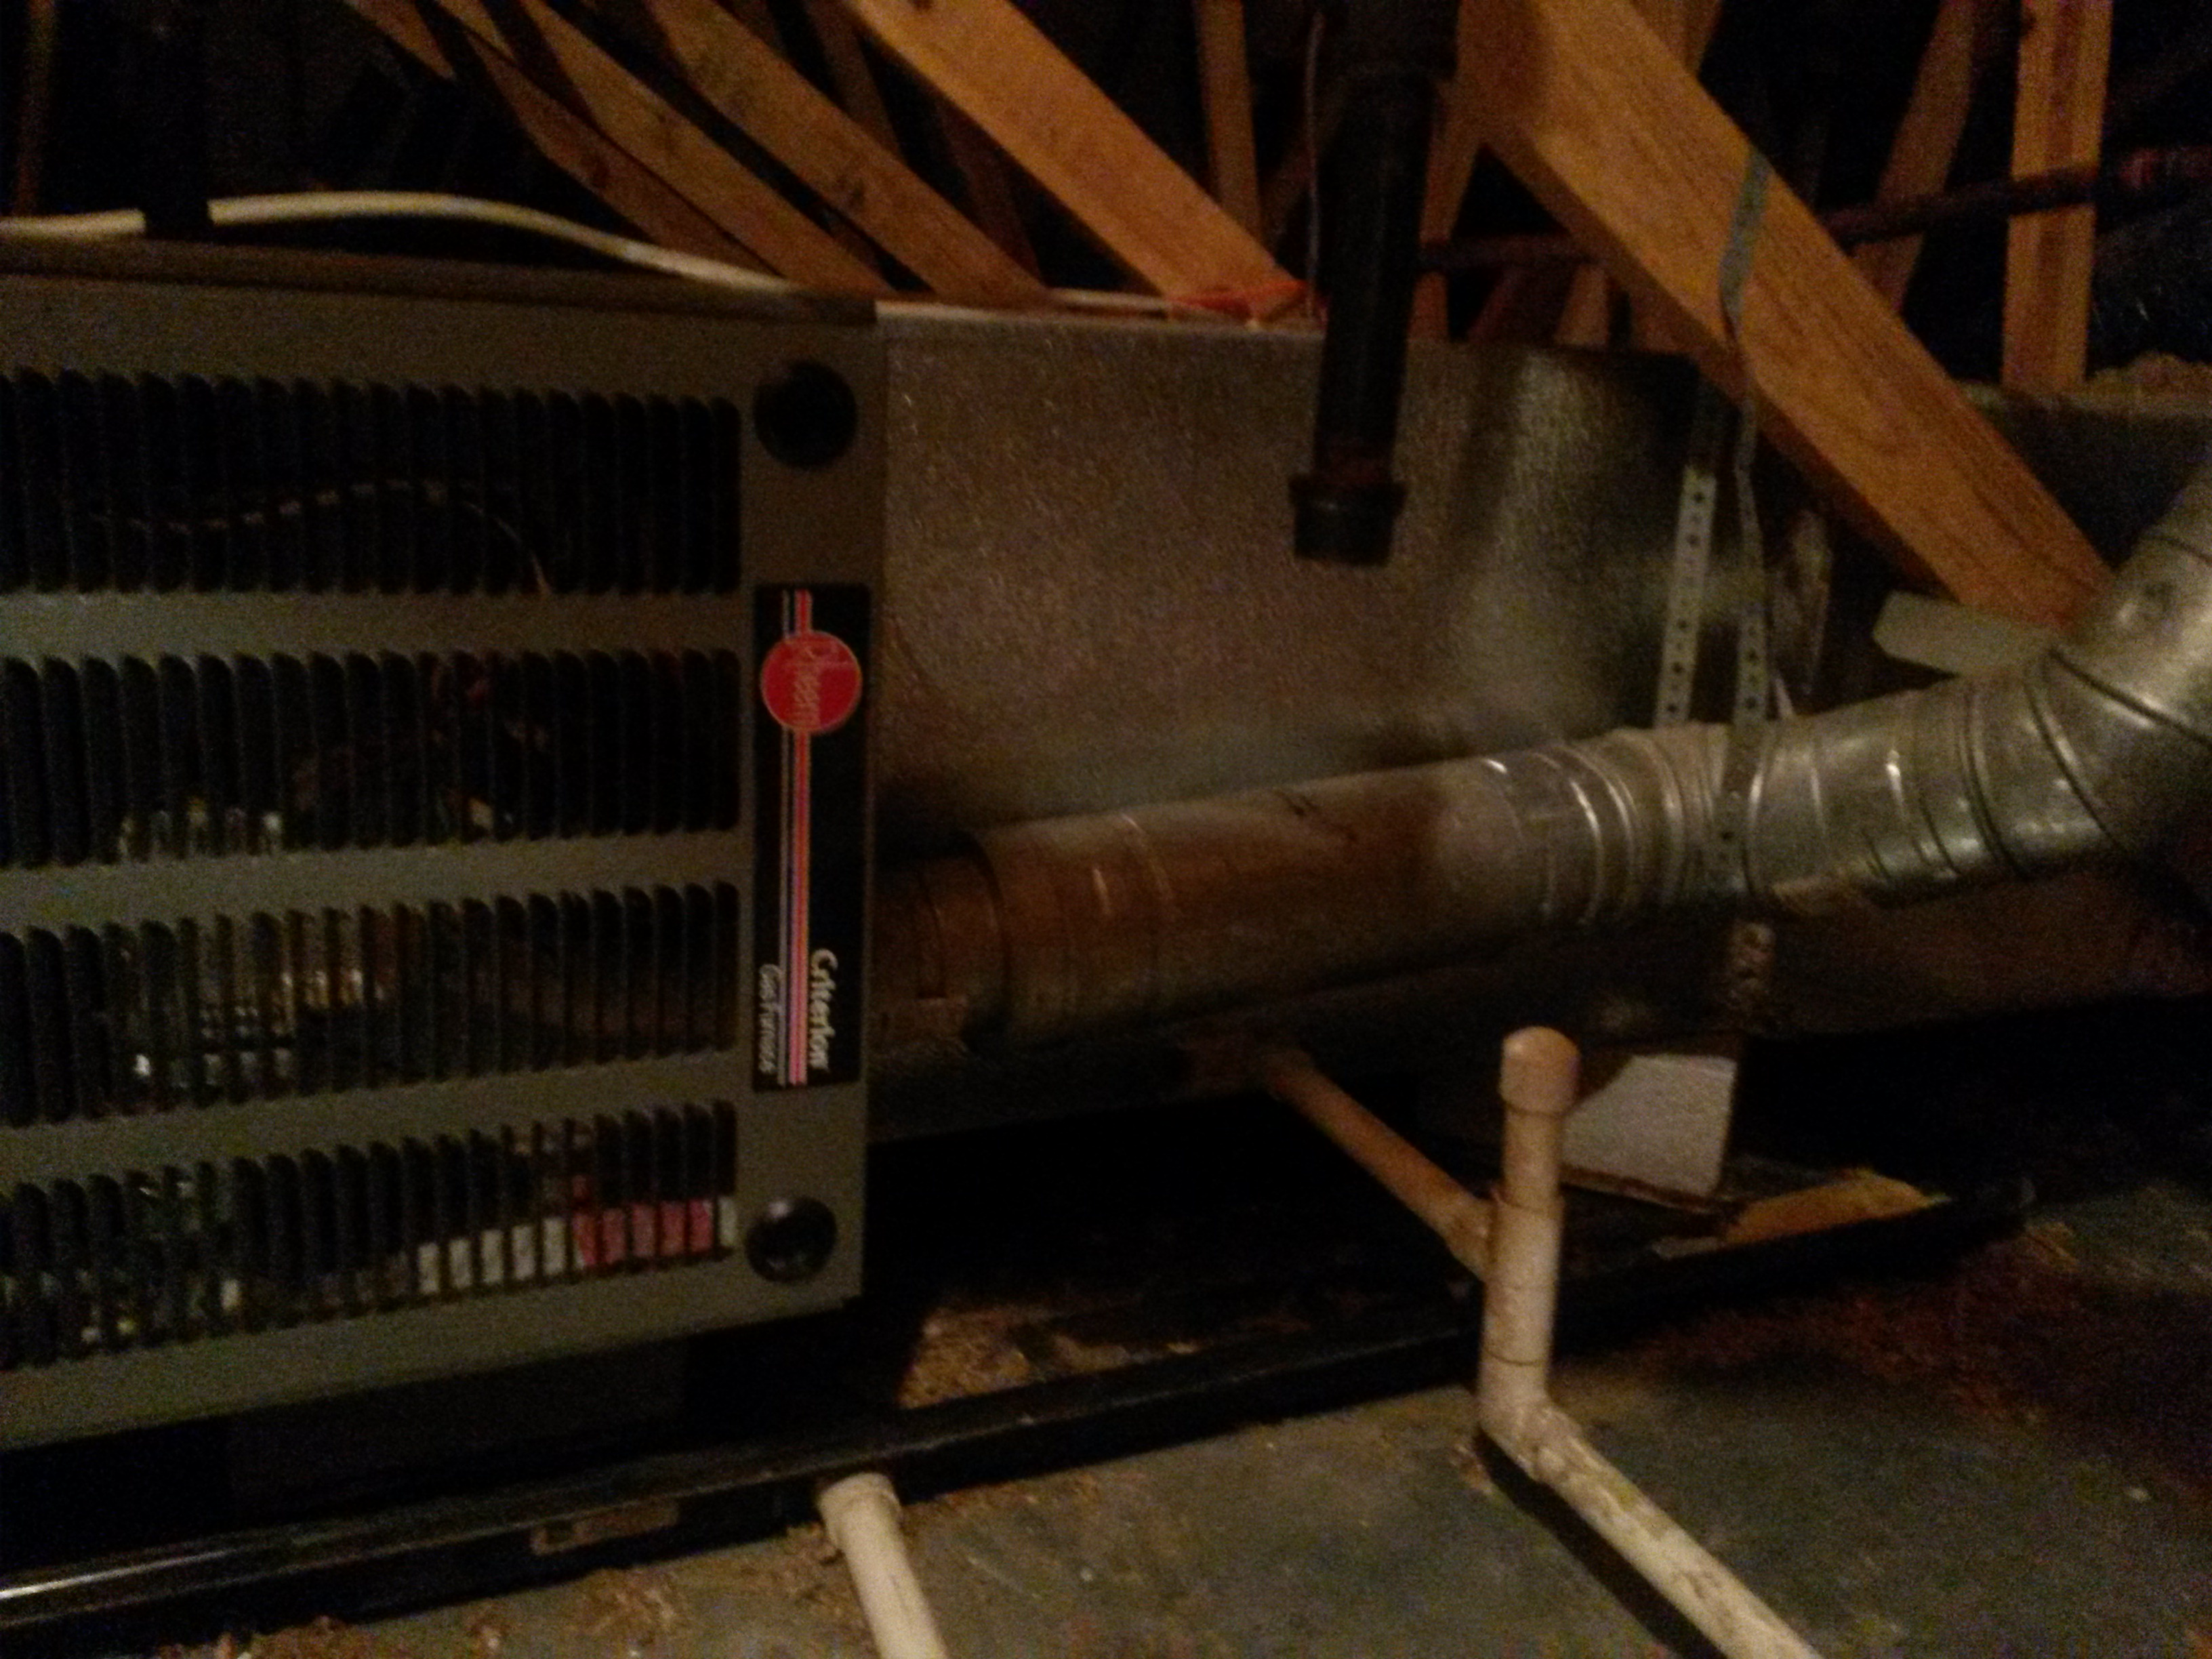 I have a two zone HVAC in my home  Last year the evaporator coil was